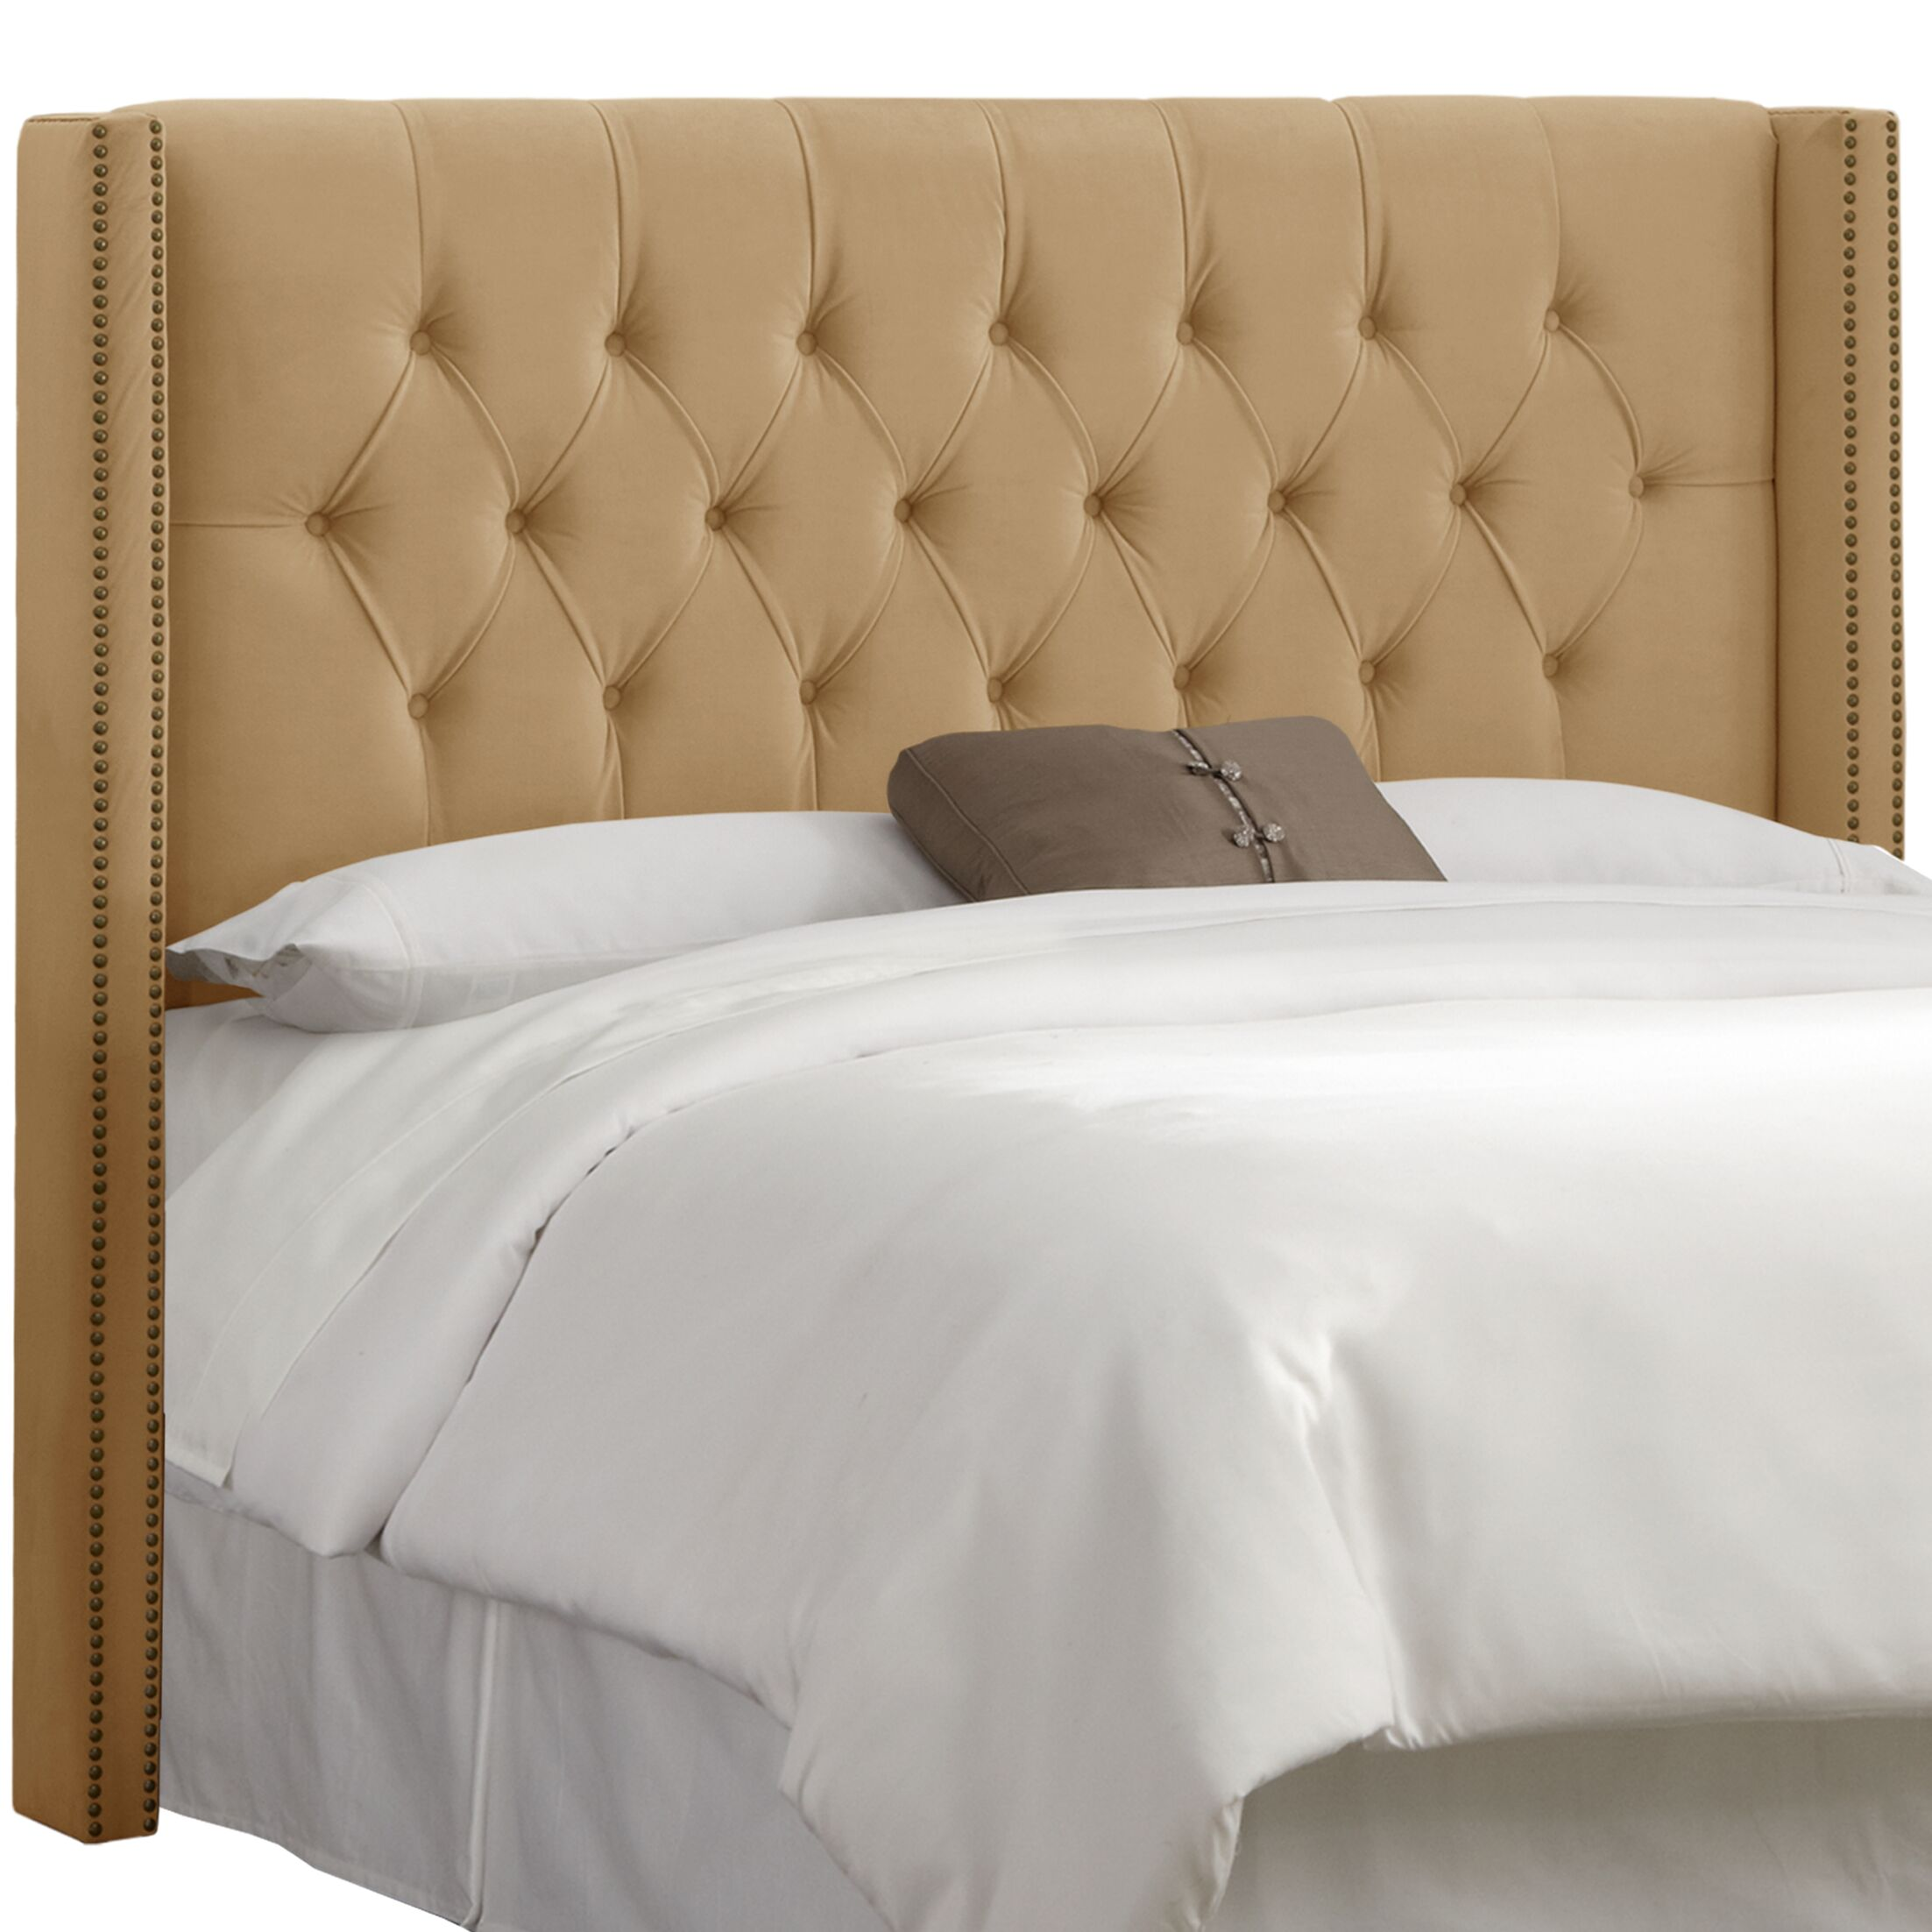 Drage Diamond Tufted Upholstered Wingback Headboard Upholstery: Velvet Honey, Size: California King